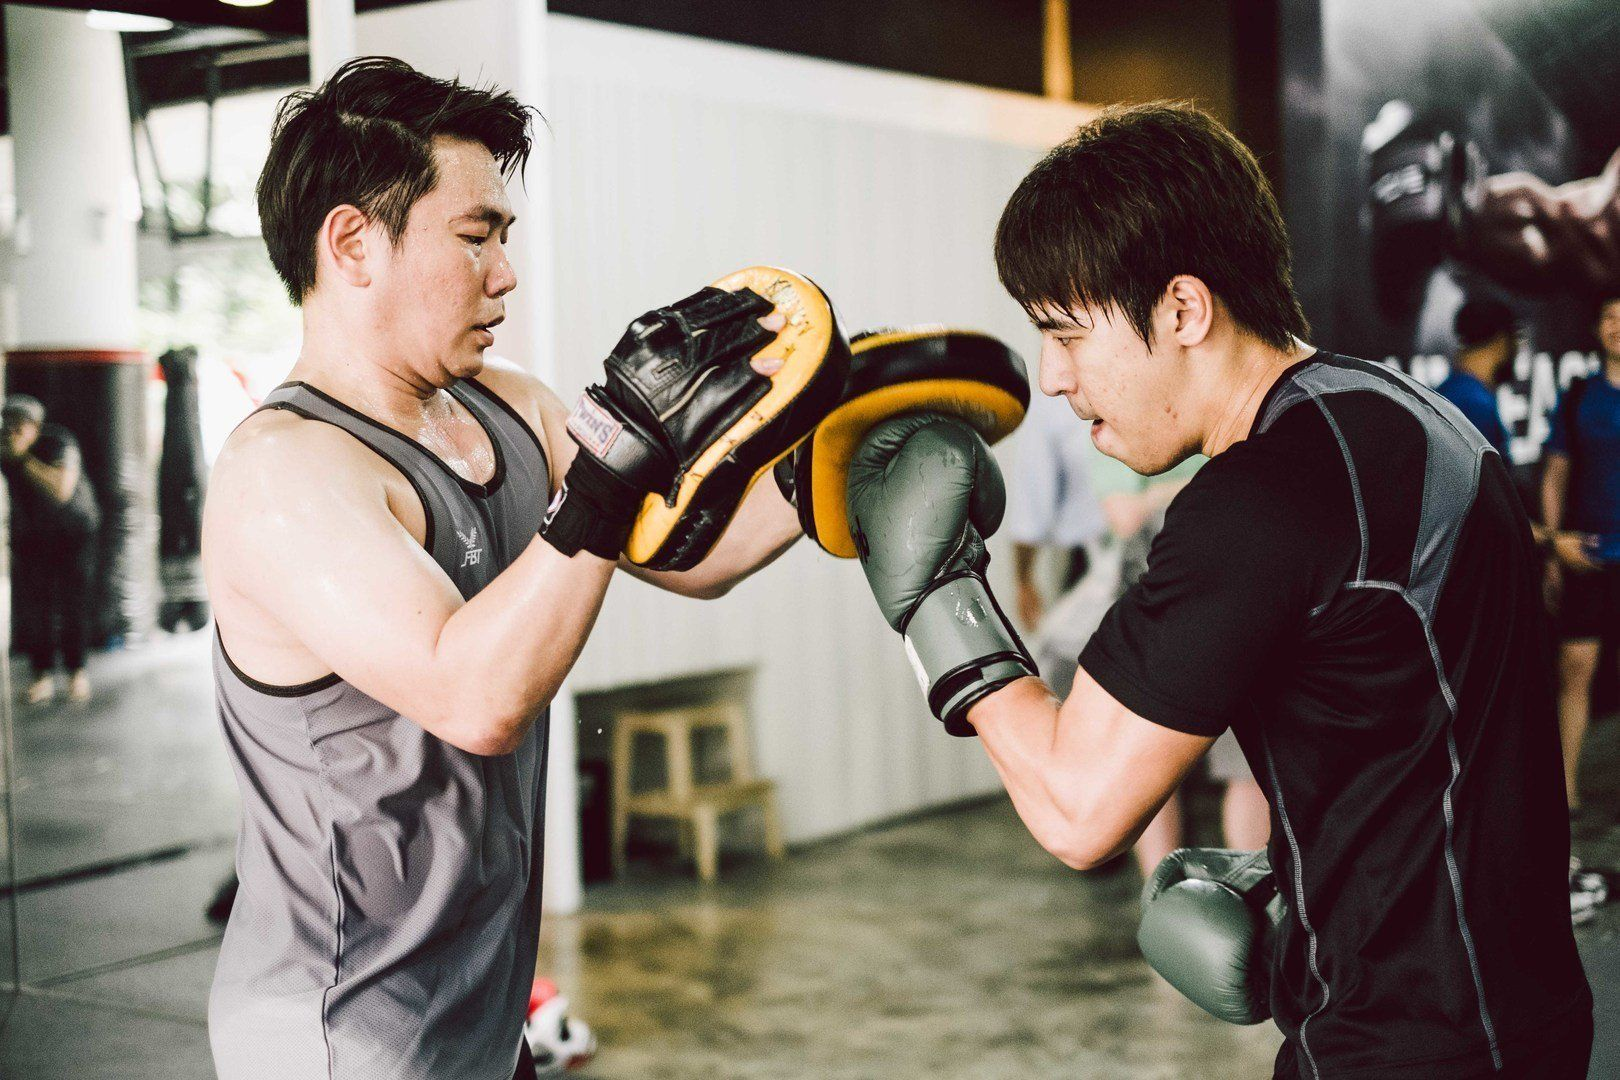 Boxing is a great workout that can help you into your best shape!